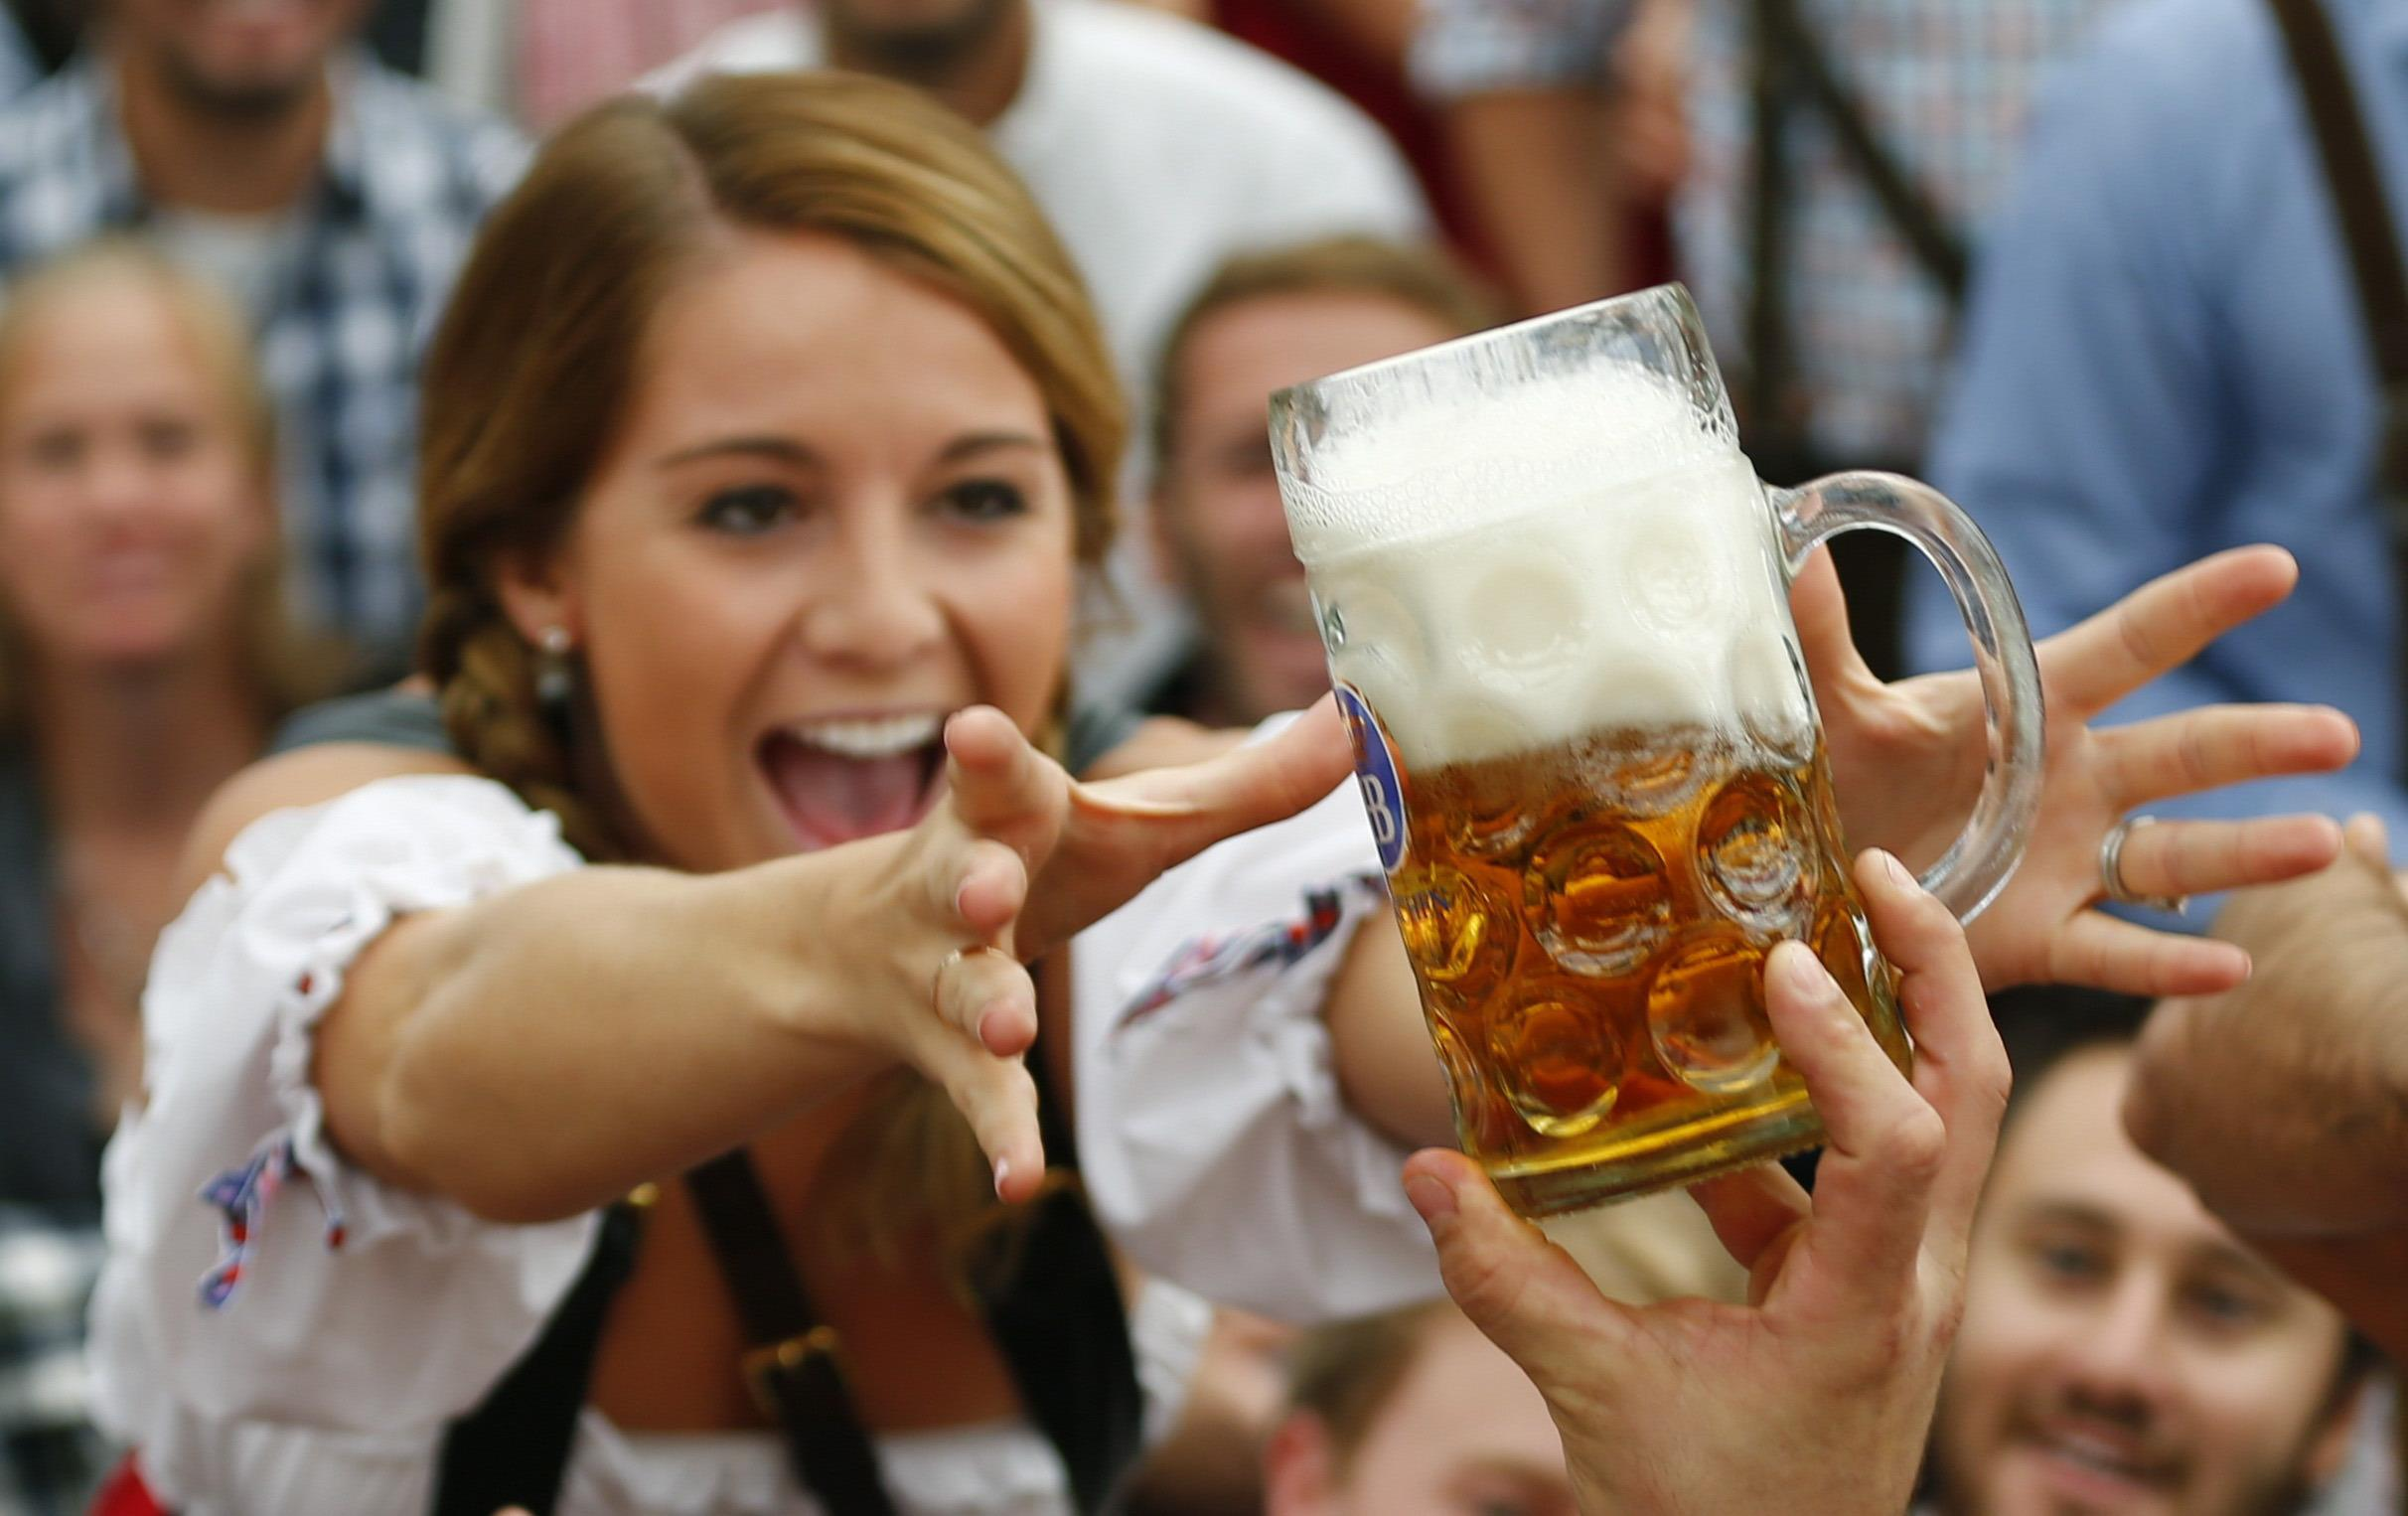 Why Oktoberfest Fans May Not Be So Thirsty This Year